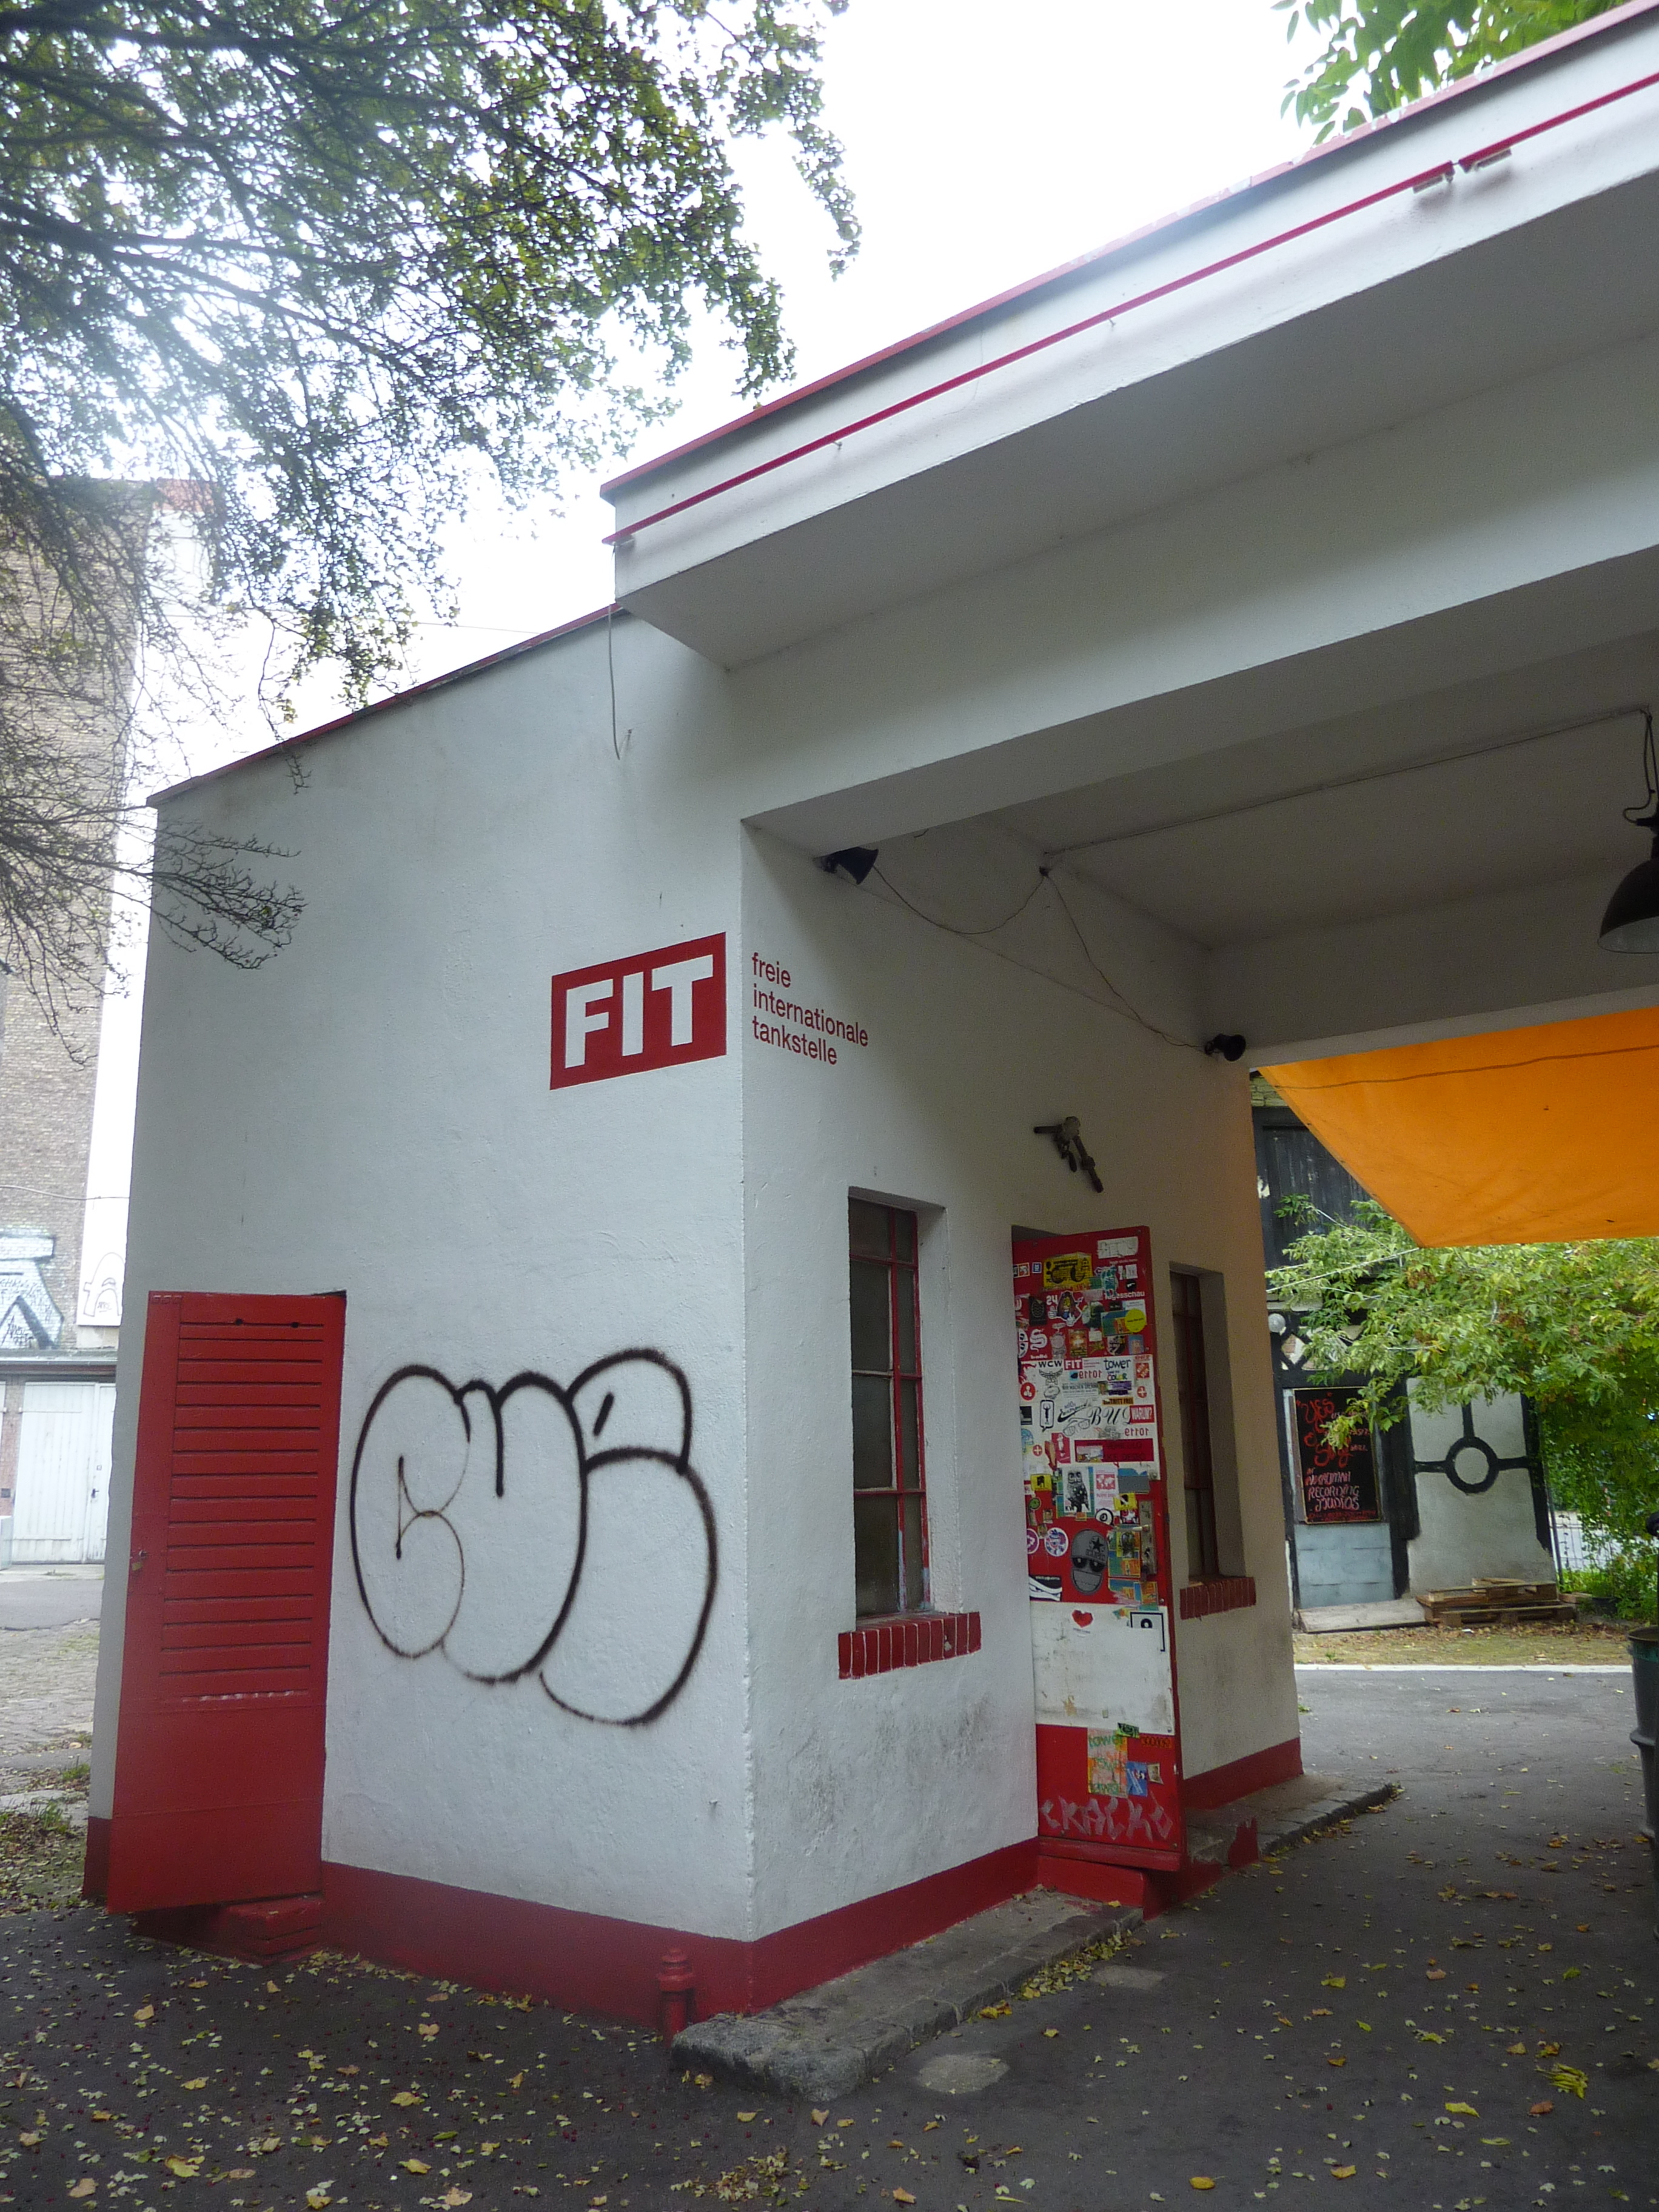 FIT gas station